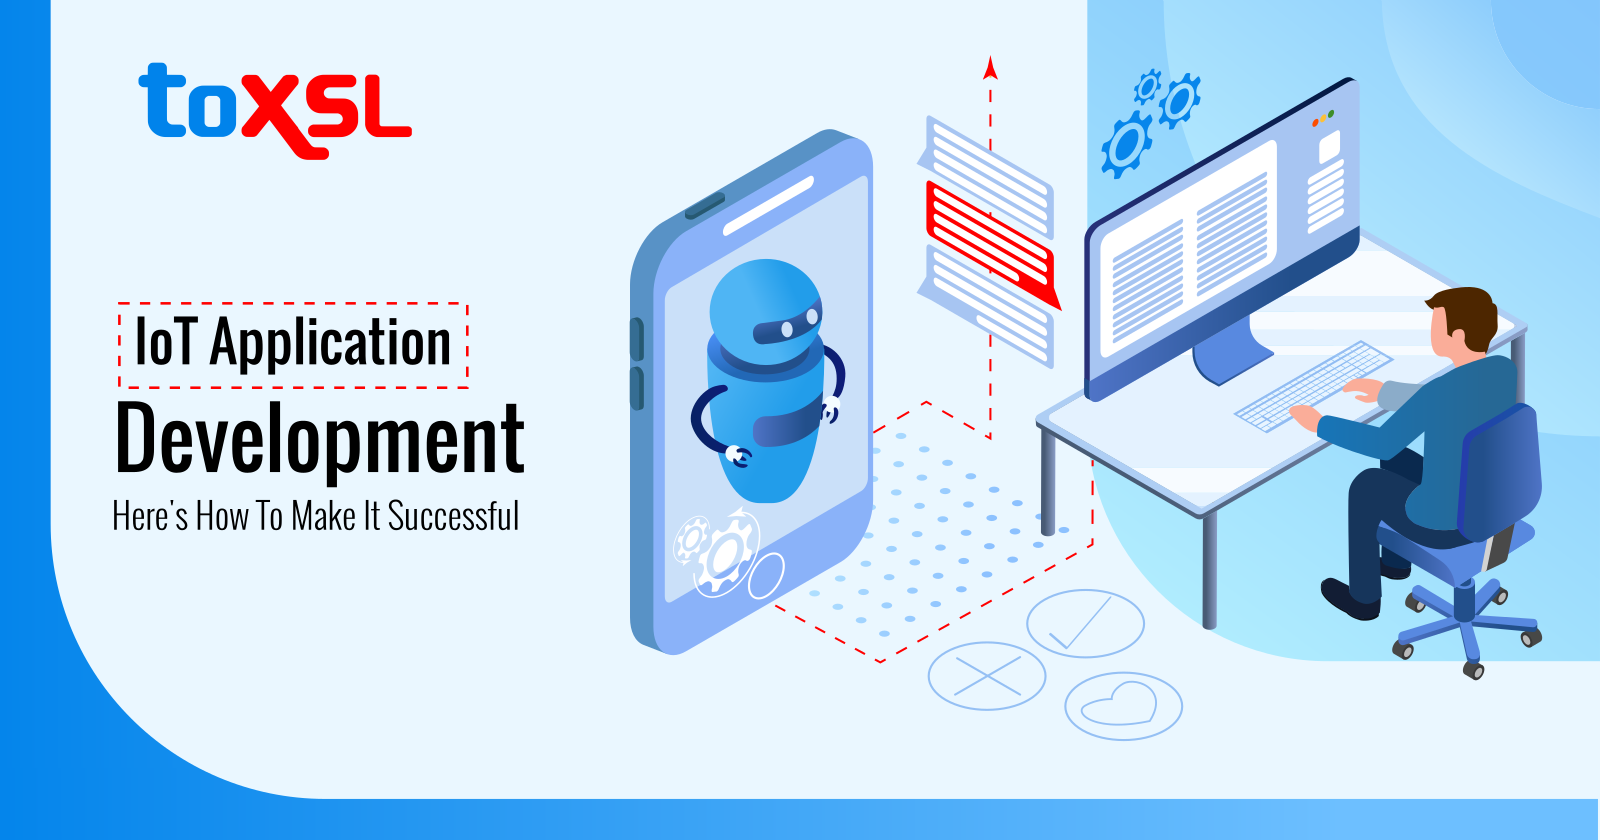 IoT Application Development: Here's How To Make It Successful